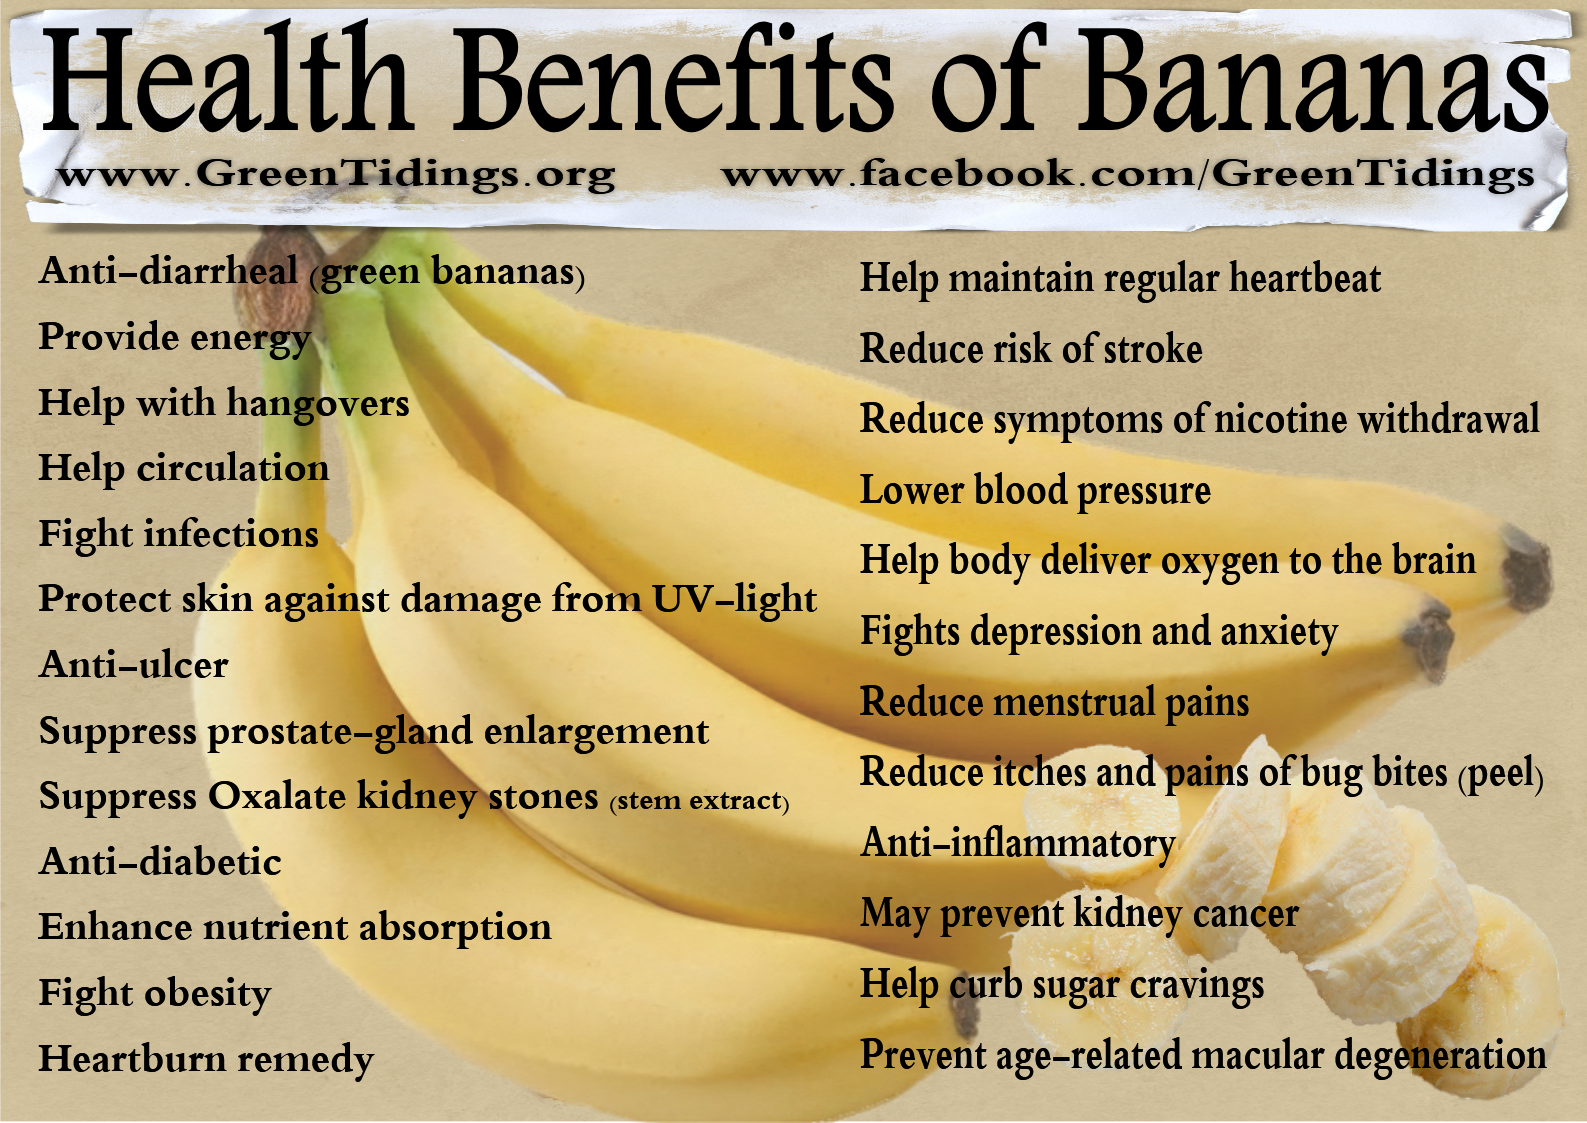 Banana health benefits nutritional facts